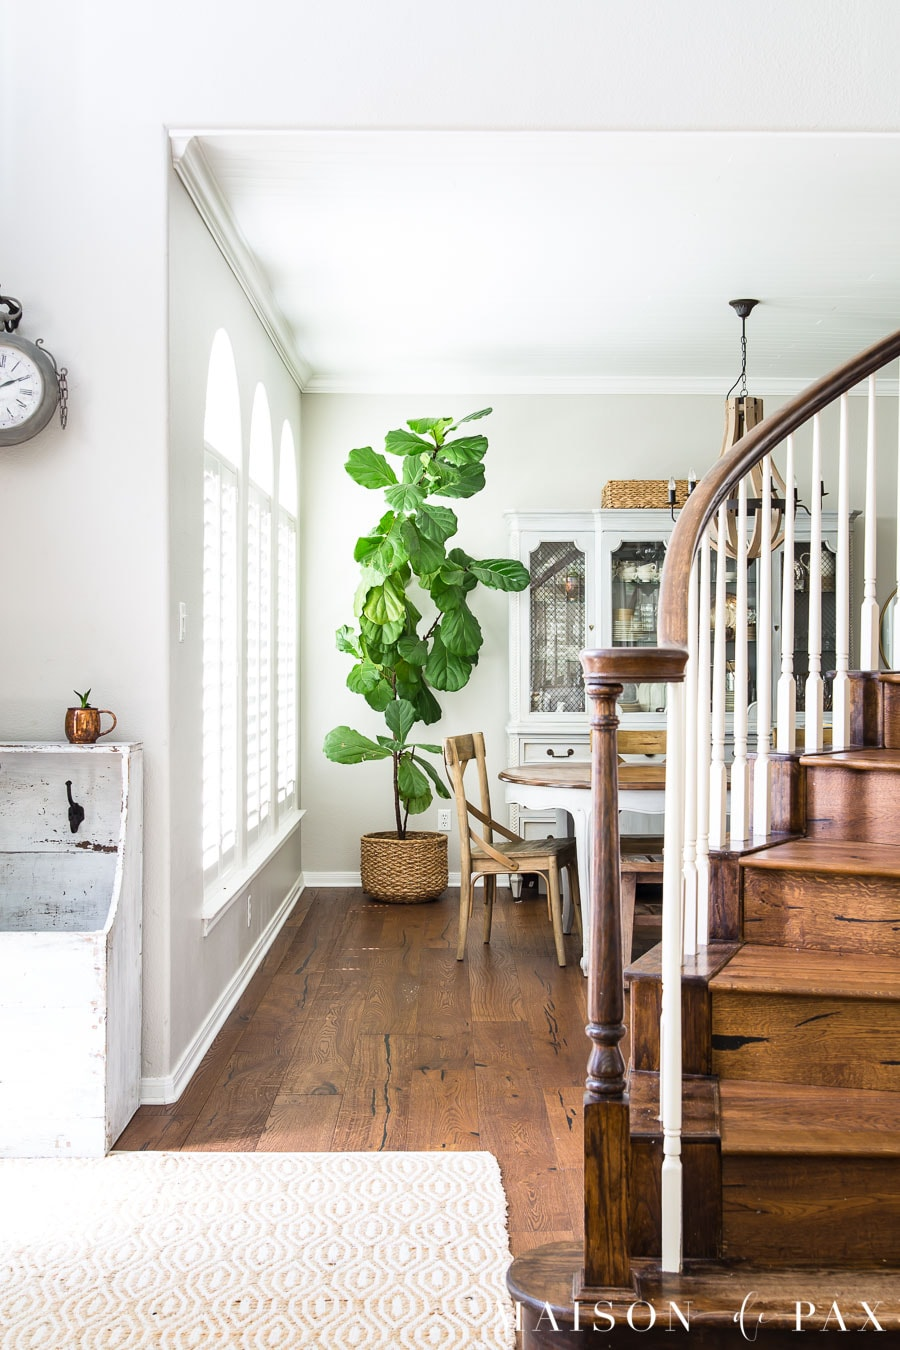 giant fiddle leaf fig tree in dining room | Maison de Pax